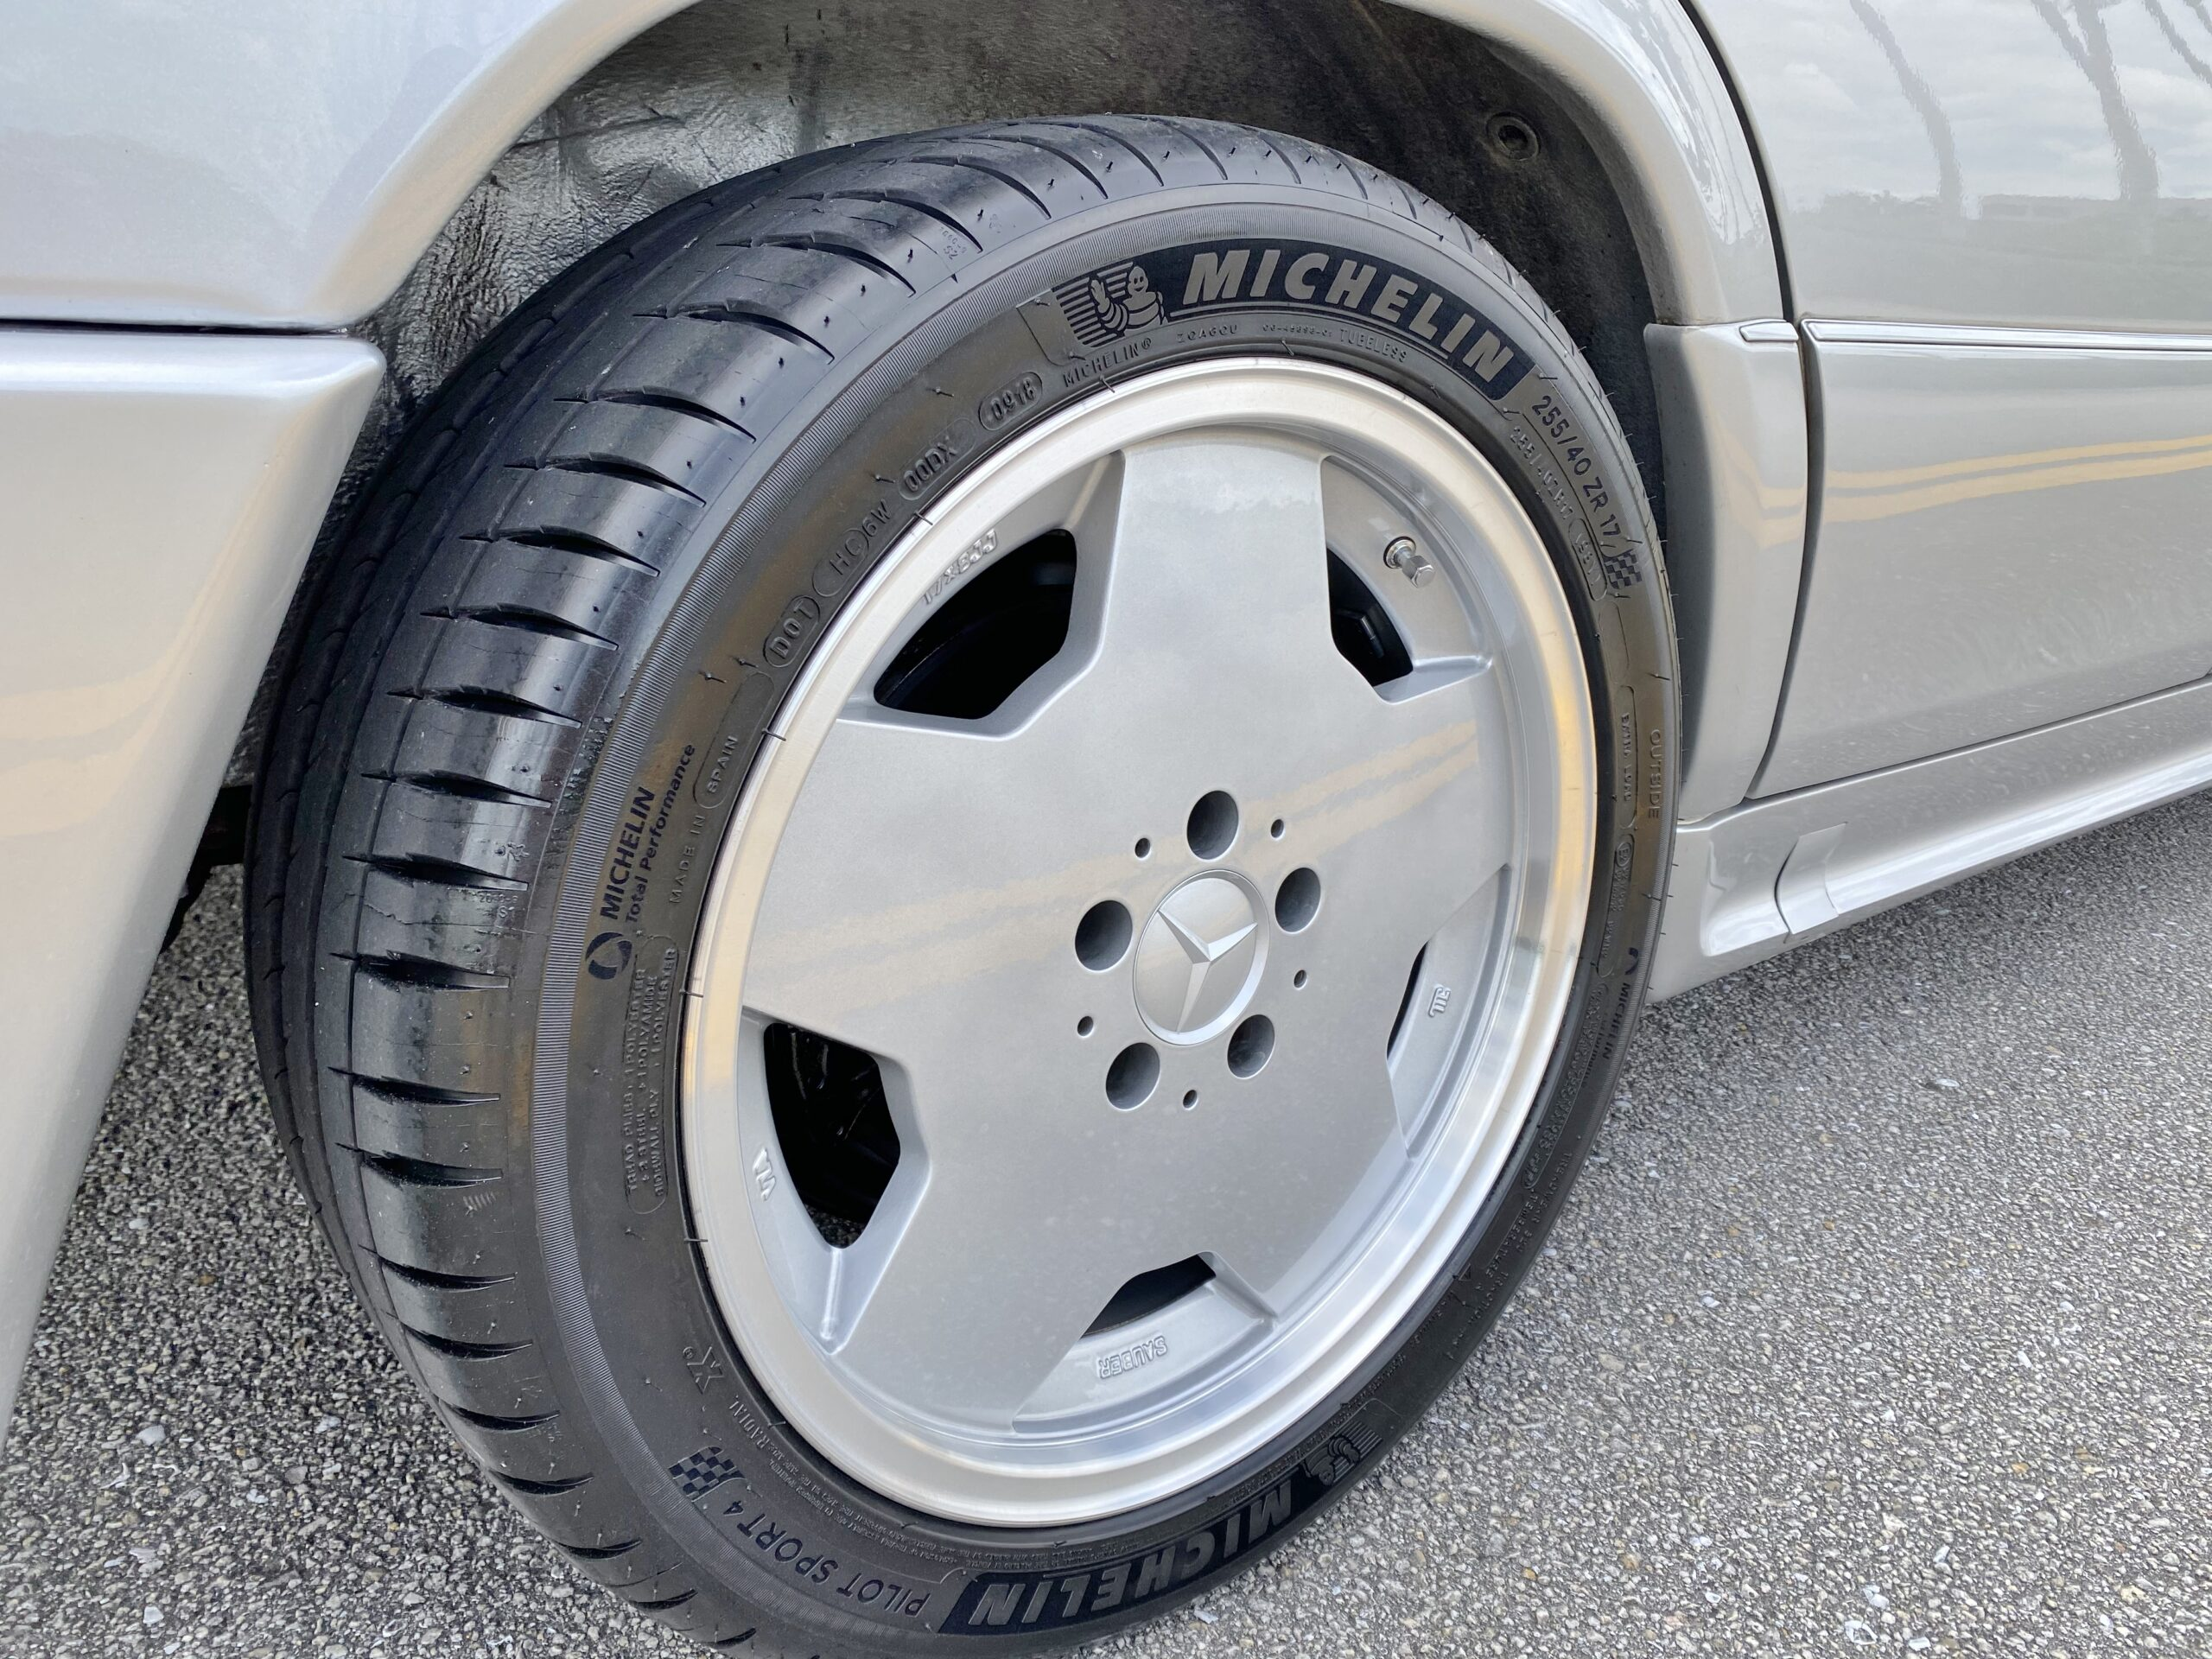 1995 Mercedes-Benz E36 AMG W-124 Rare 1 of 170 AMG E36 Wagons built – Matching numbers – Only 70K Miles -Like New